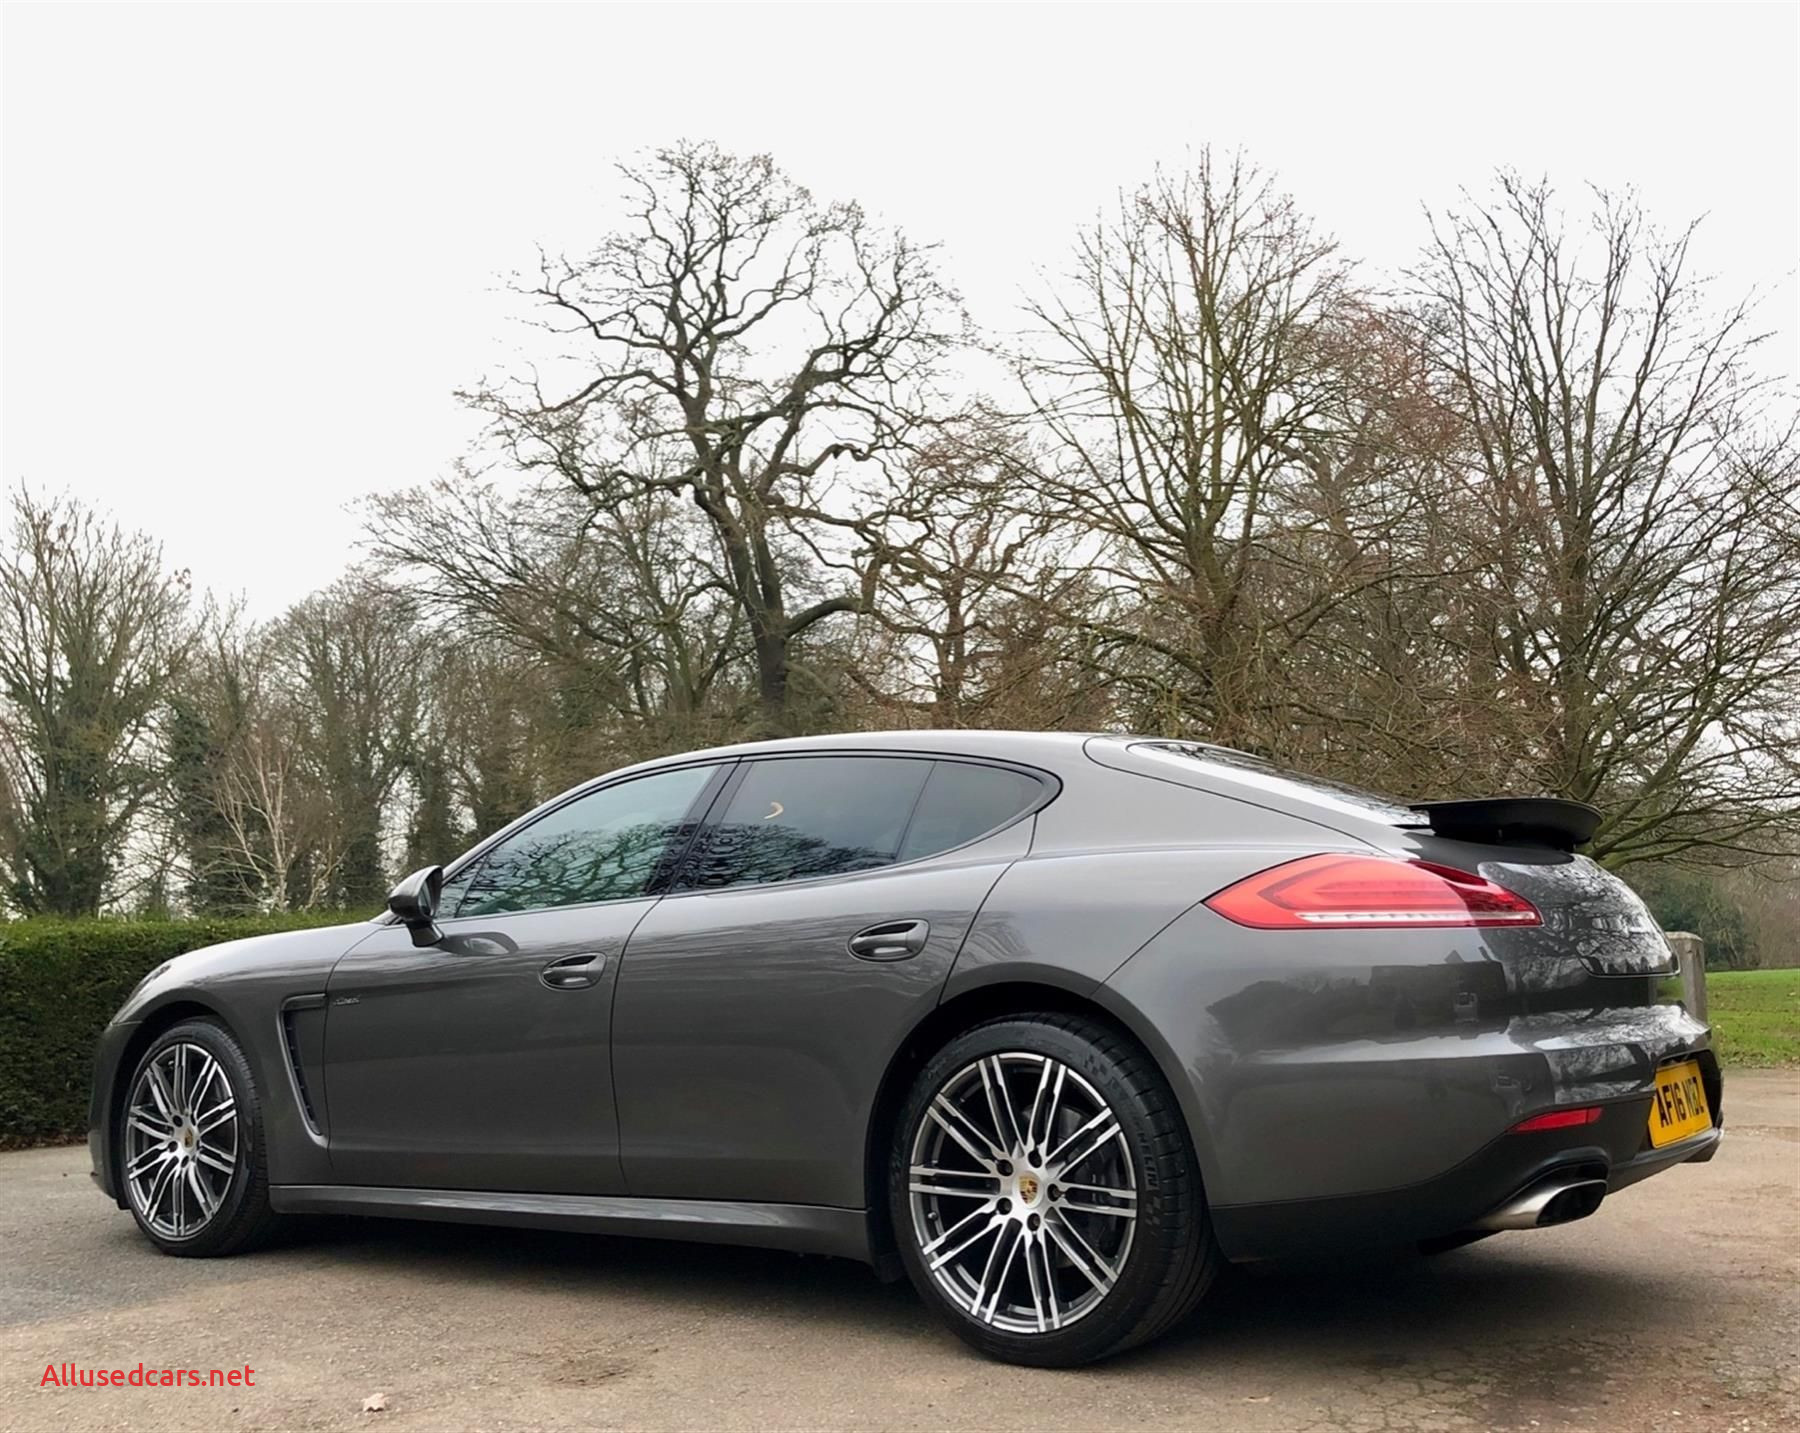 2016 Porsche Panamera Awesome Used 2016 Porsche Panamera 3 0d 300bhp Pdk for Sale In